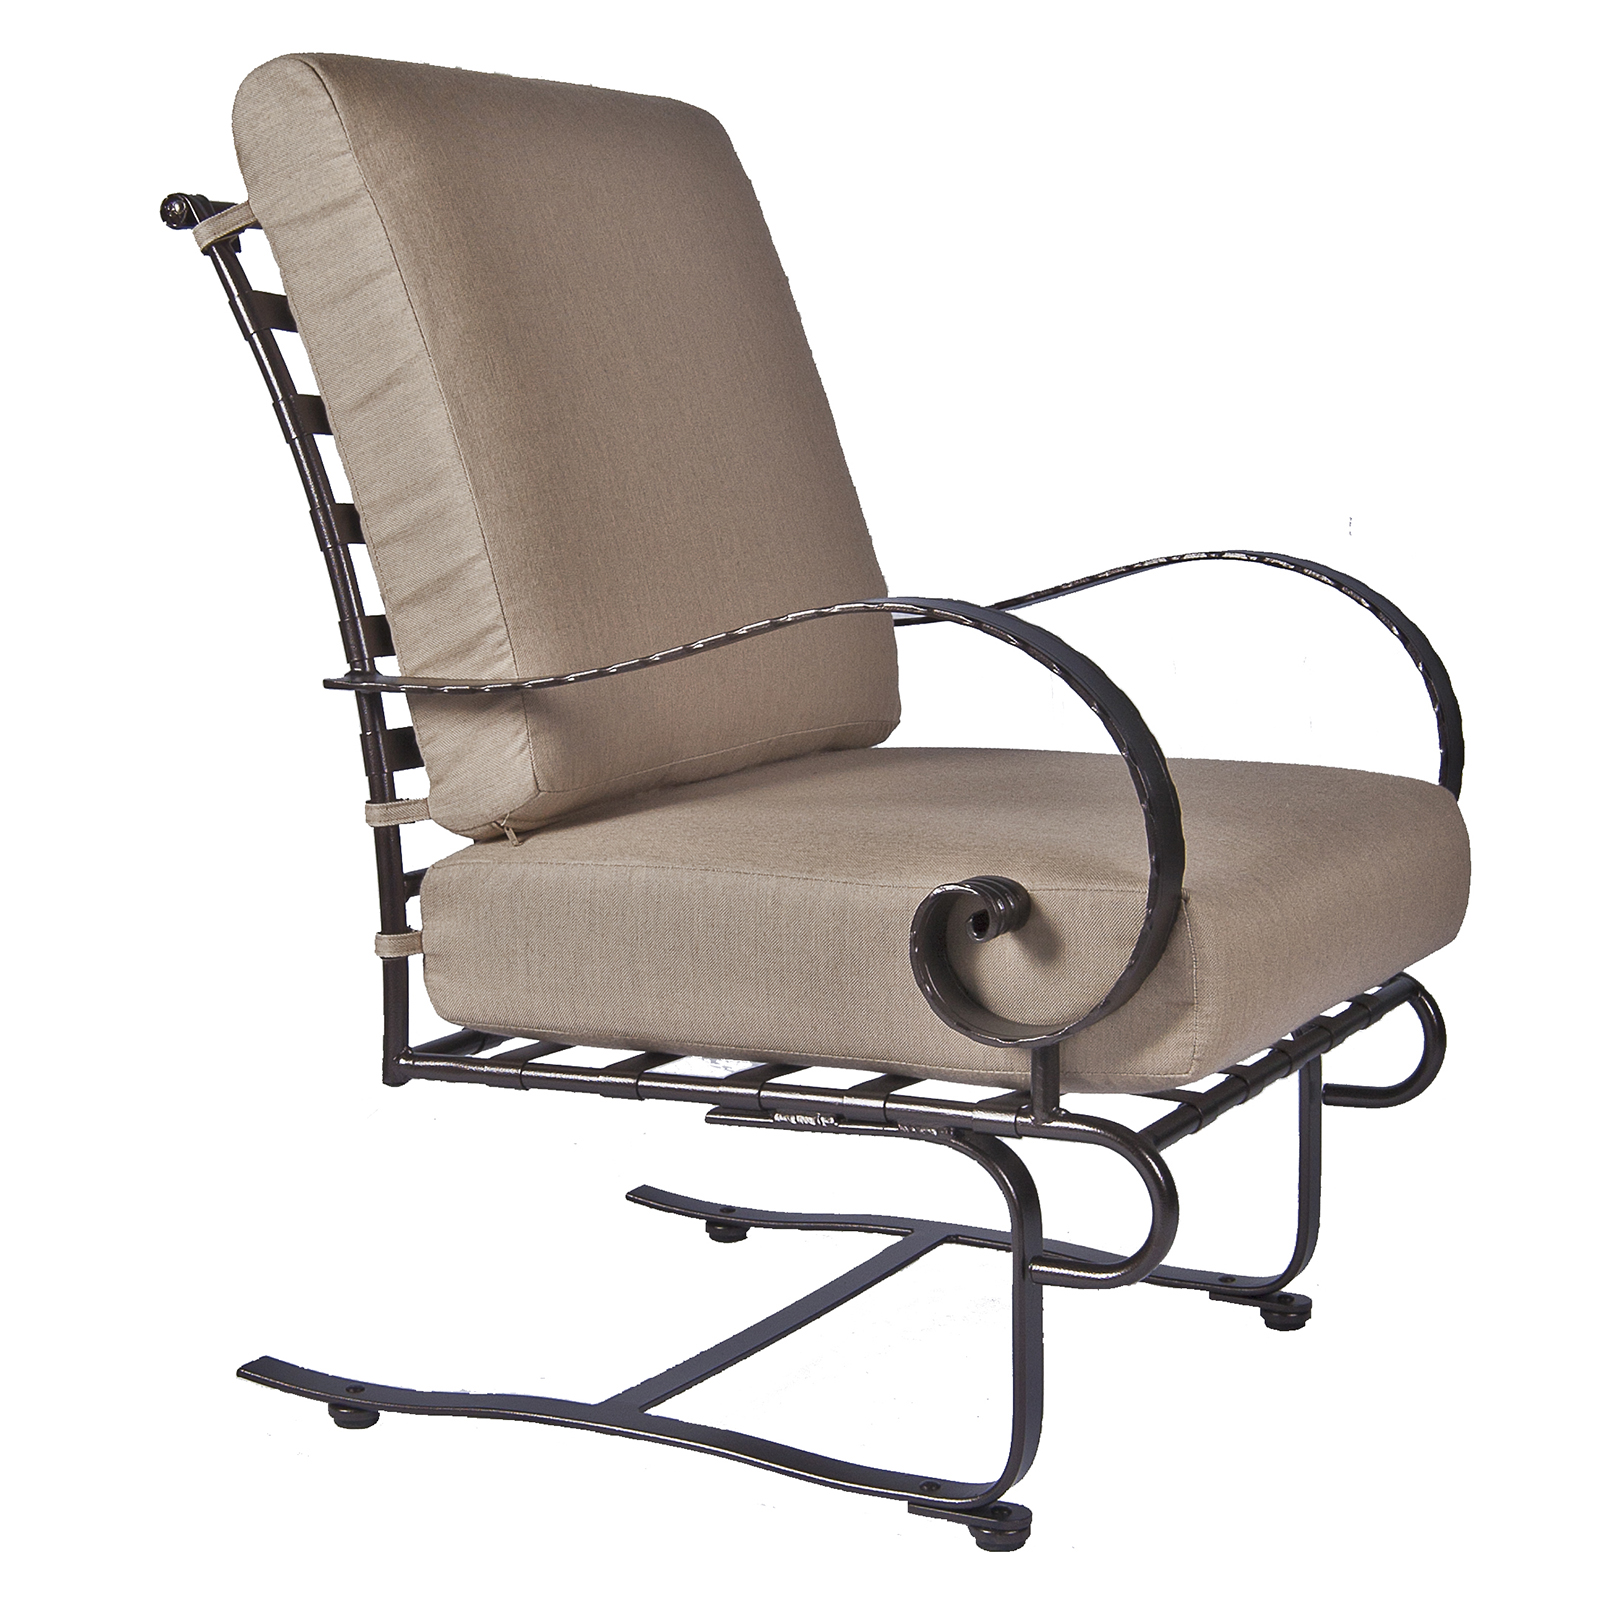 Spring-Base-Lounge-Chair-956-SBW_Catalog_GR35_1600-Classico-W-OW-Lee